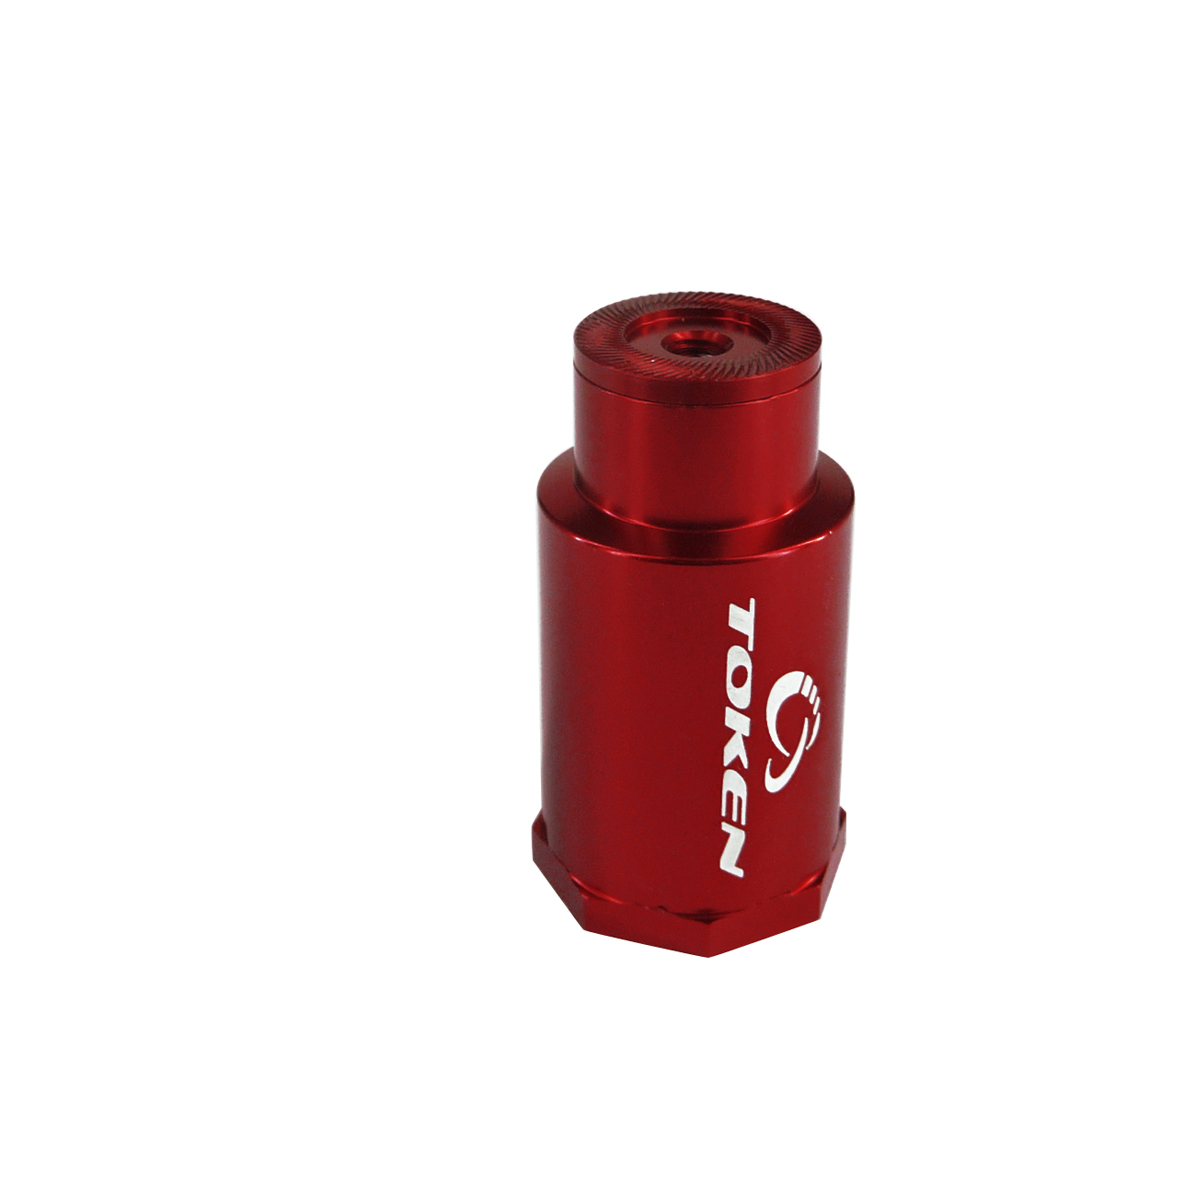 Fixation lampe token rouge 26 g